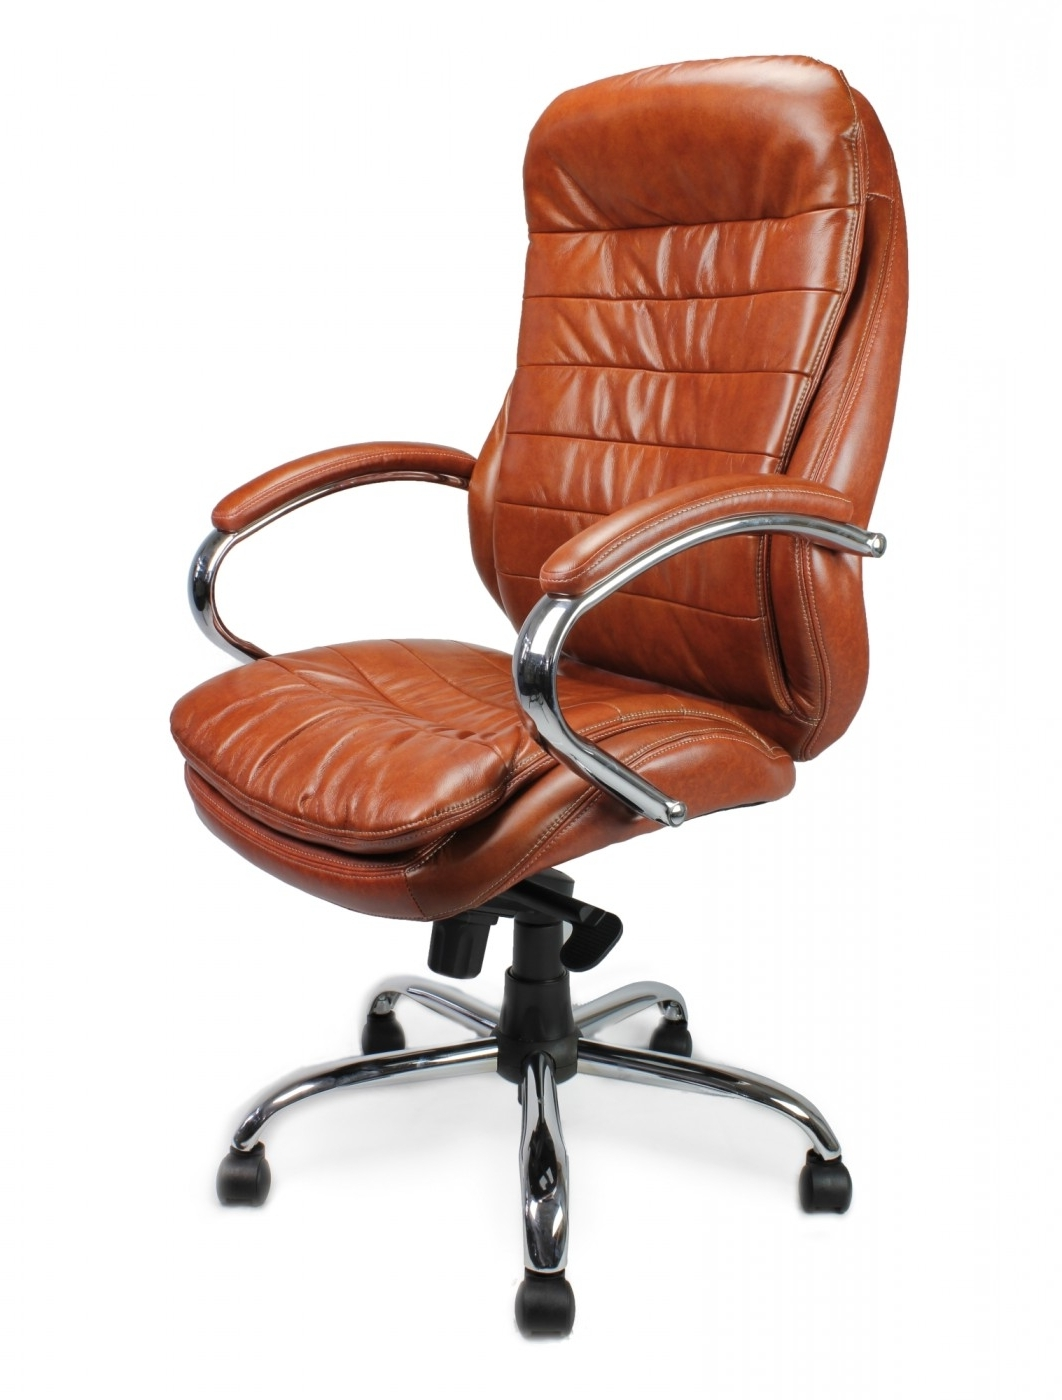 Green Leather Executive Office Chairs Pertaining To Well Liked Chair : Leather And Wood Executive Office Chair Executive Leather (Gallery 8 of 20)